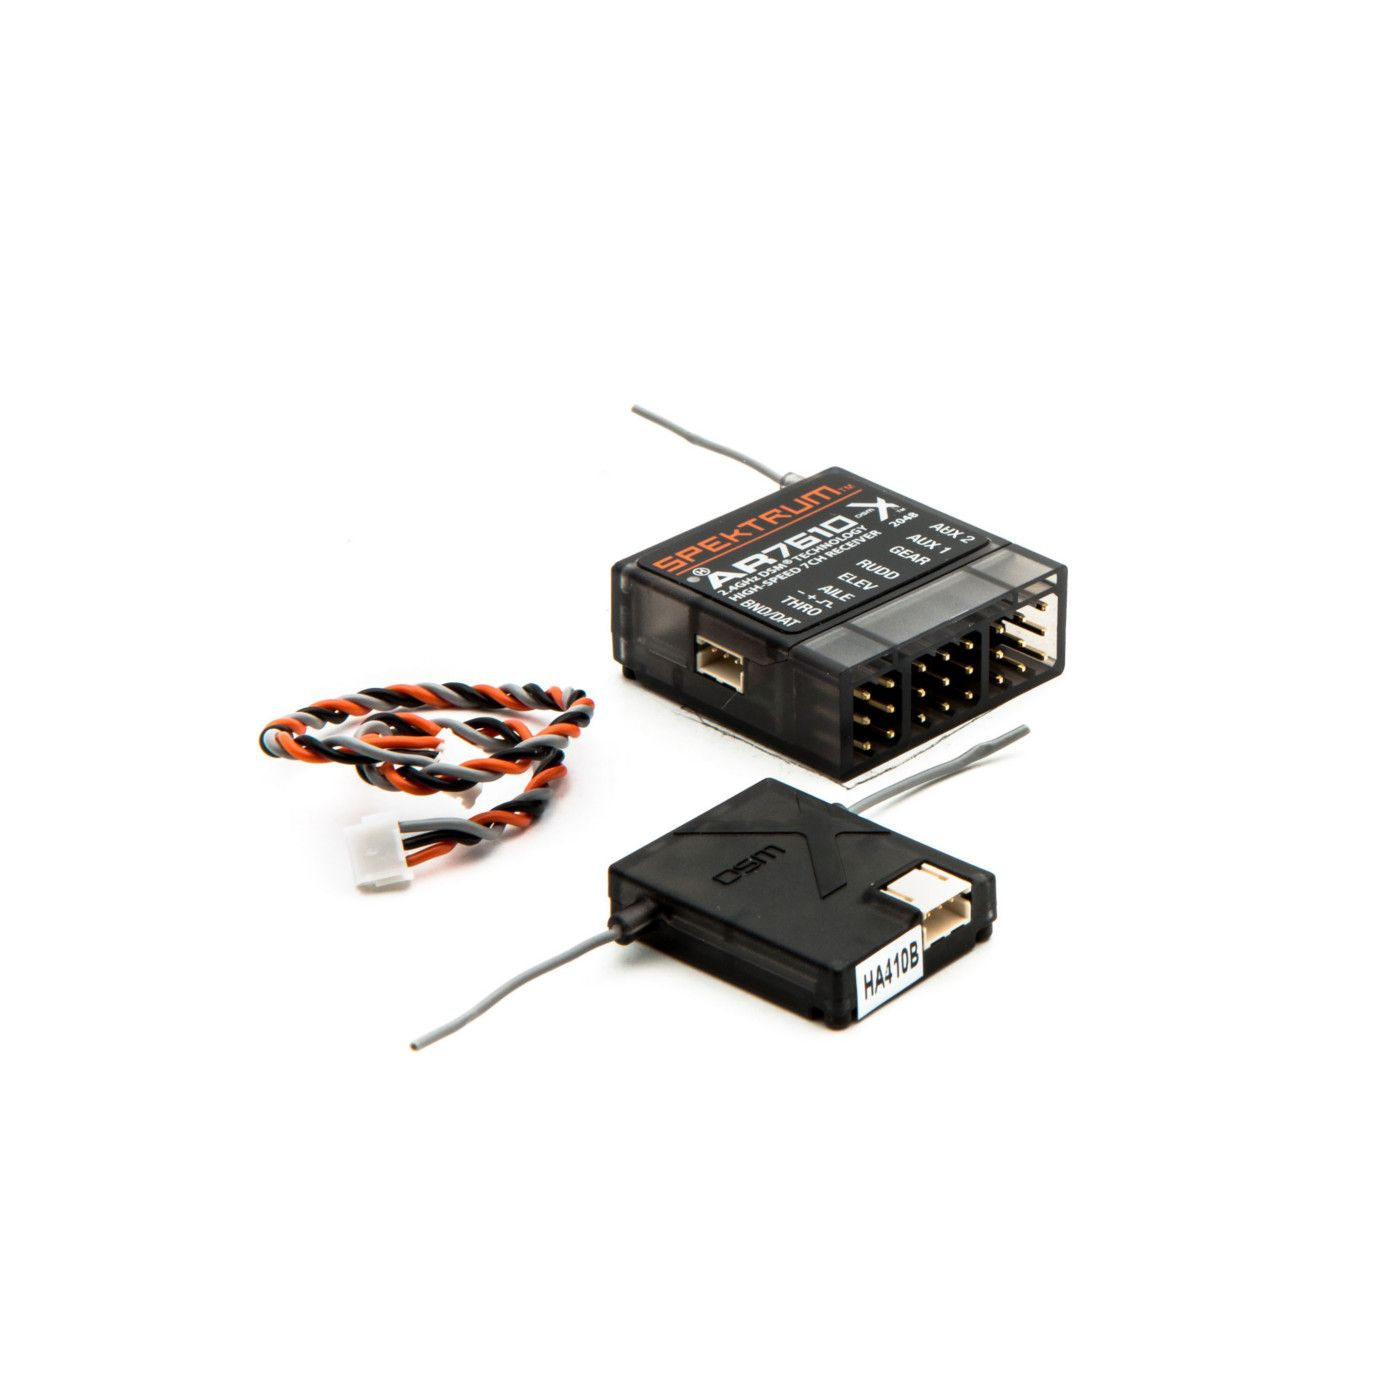 Image for AR7610 7-Channel DSMX Hi Speed Receiver from HorizonHobby